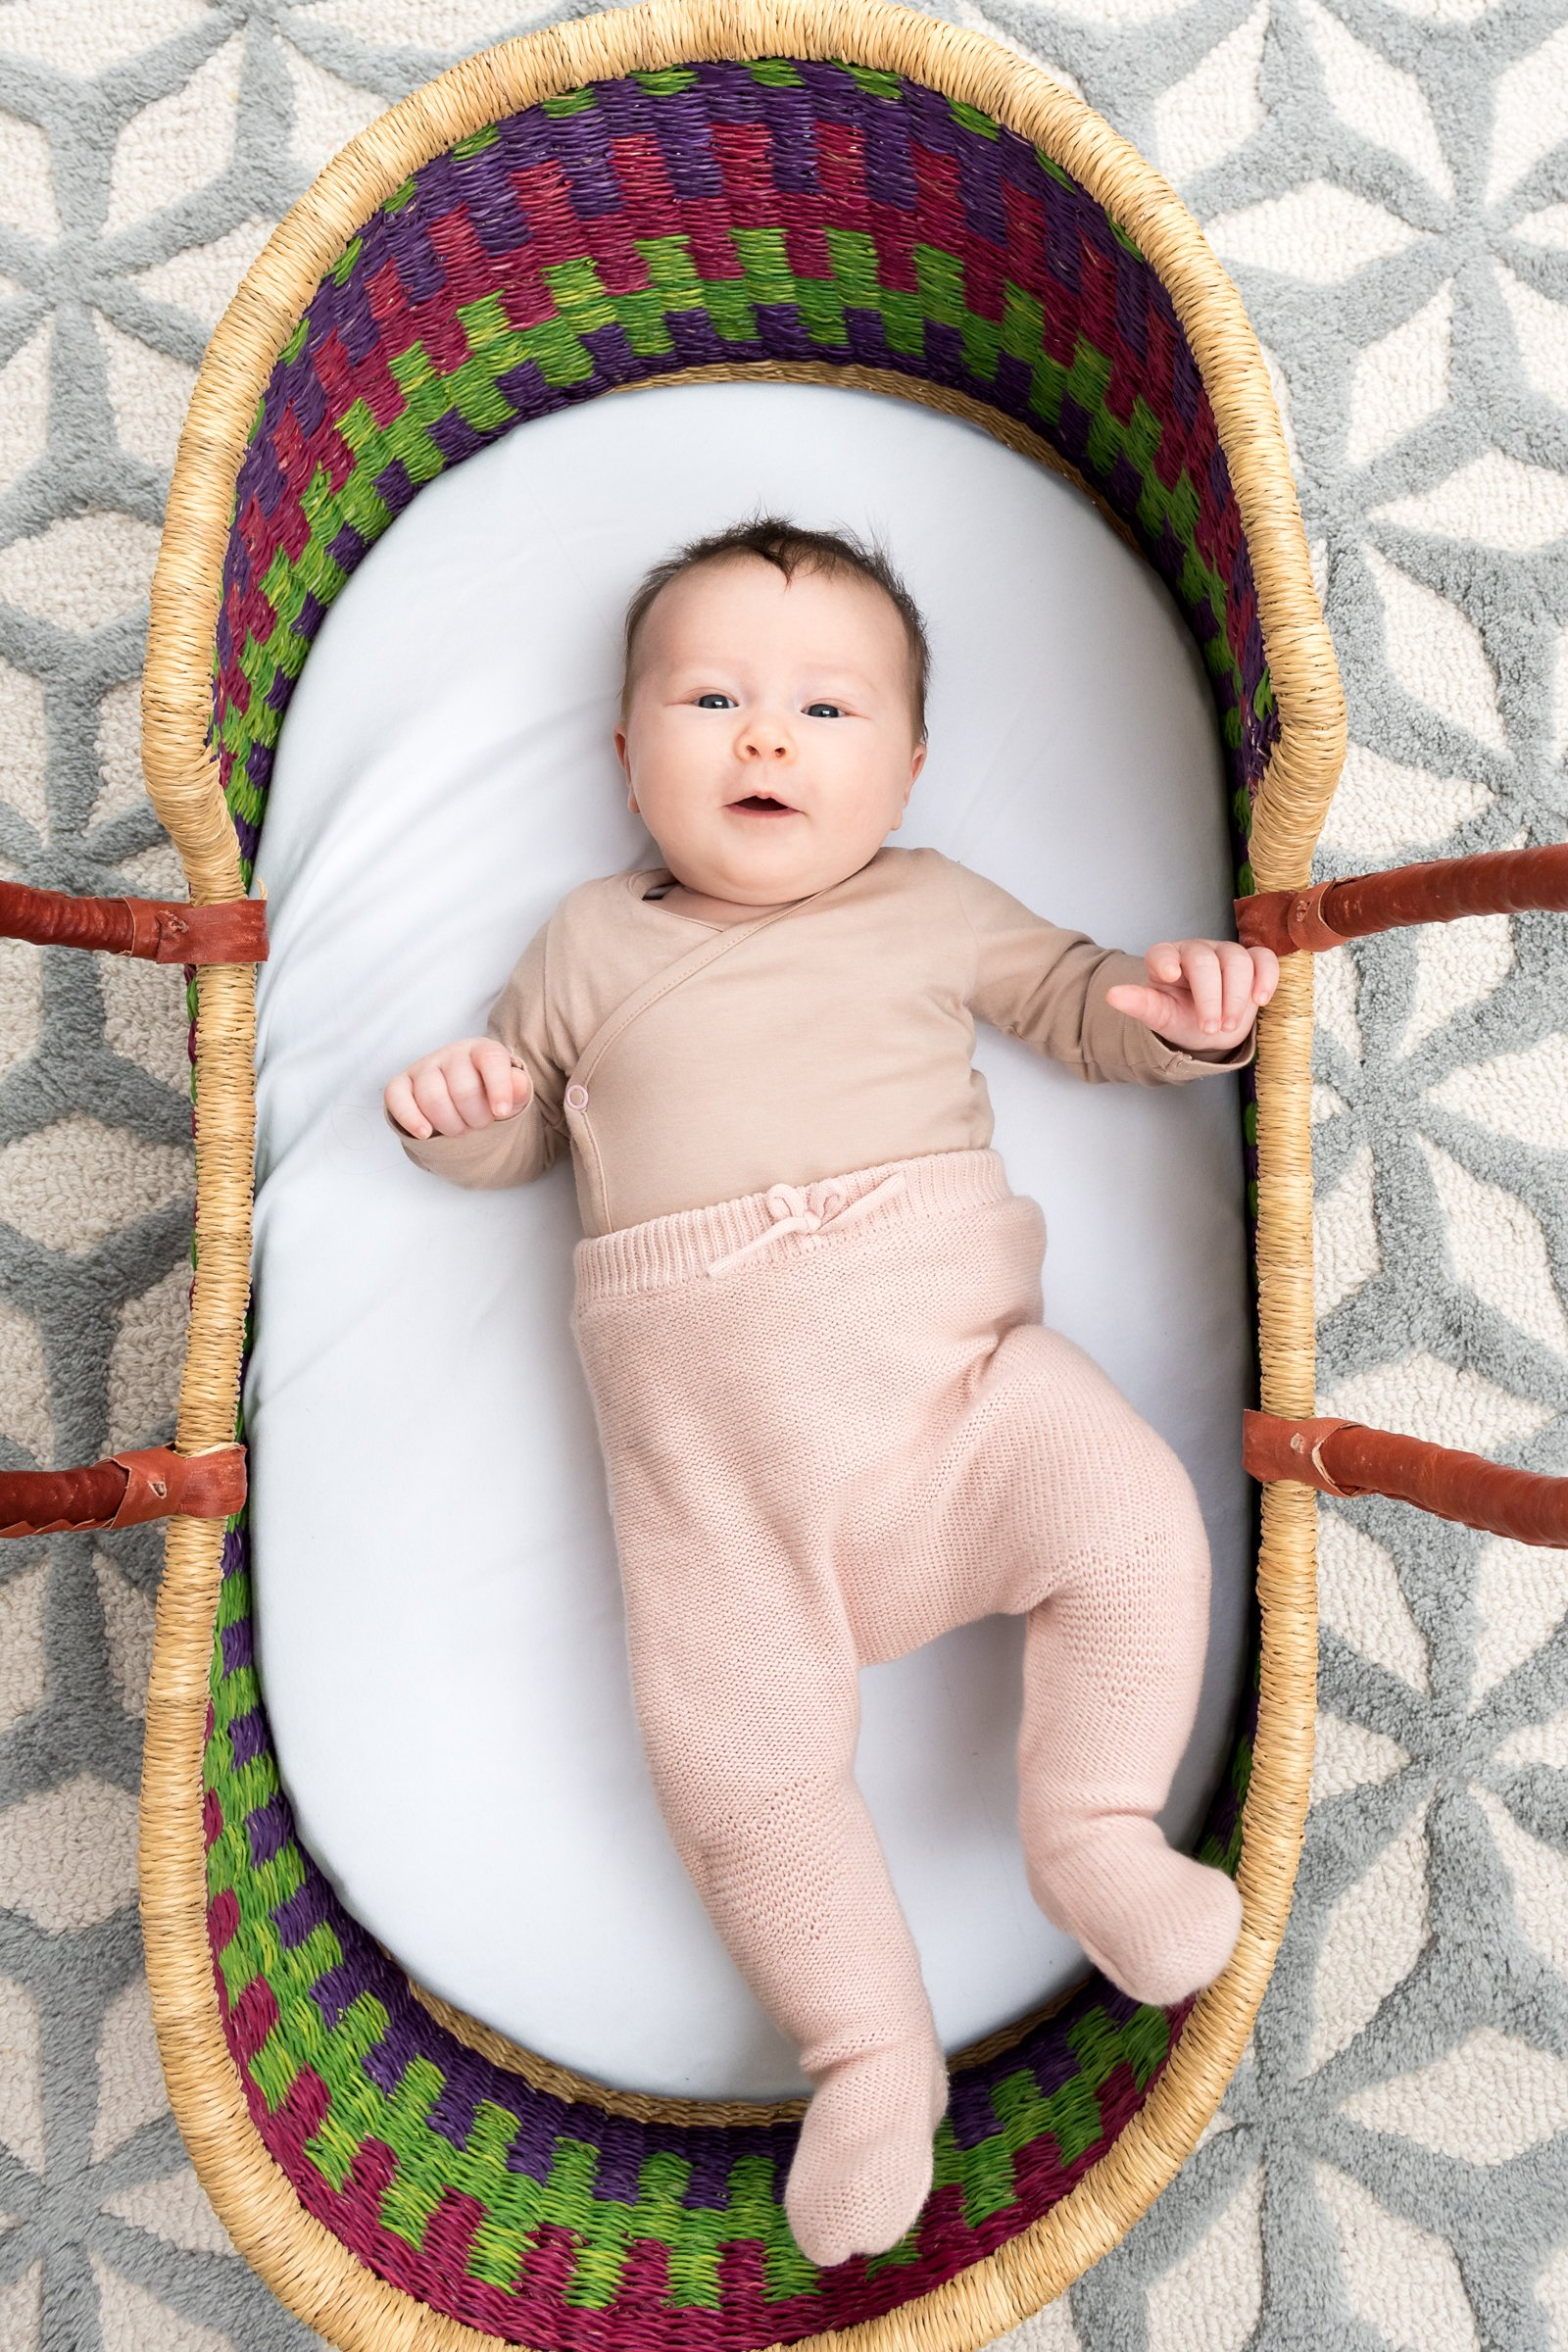 3 month old baby photography at home